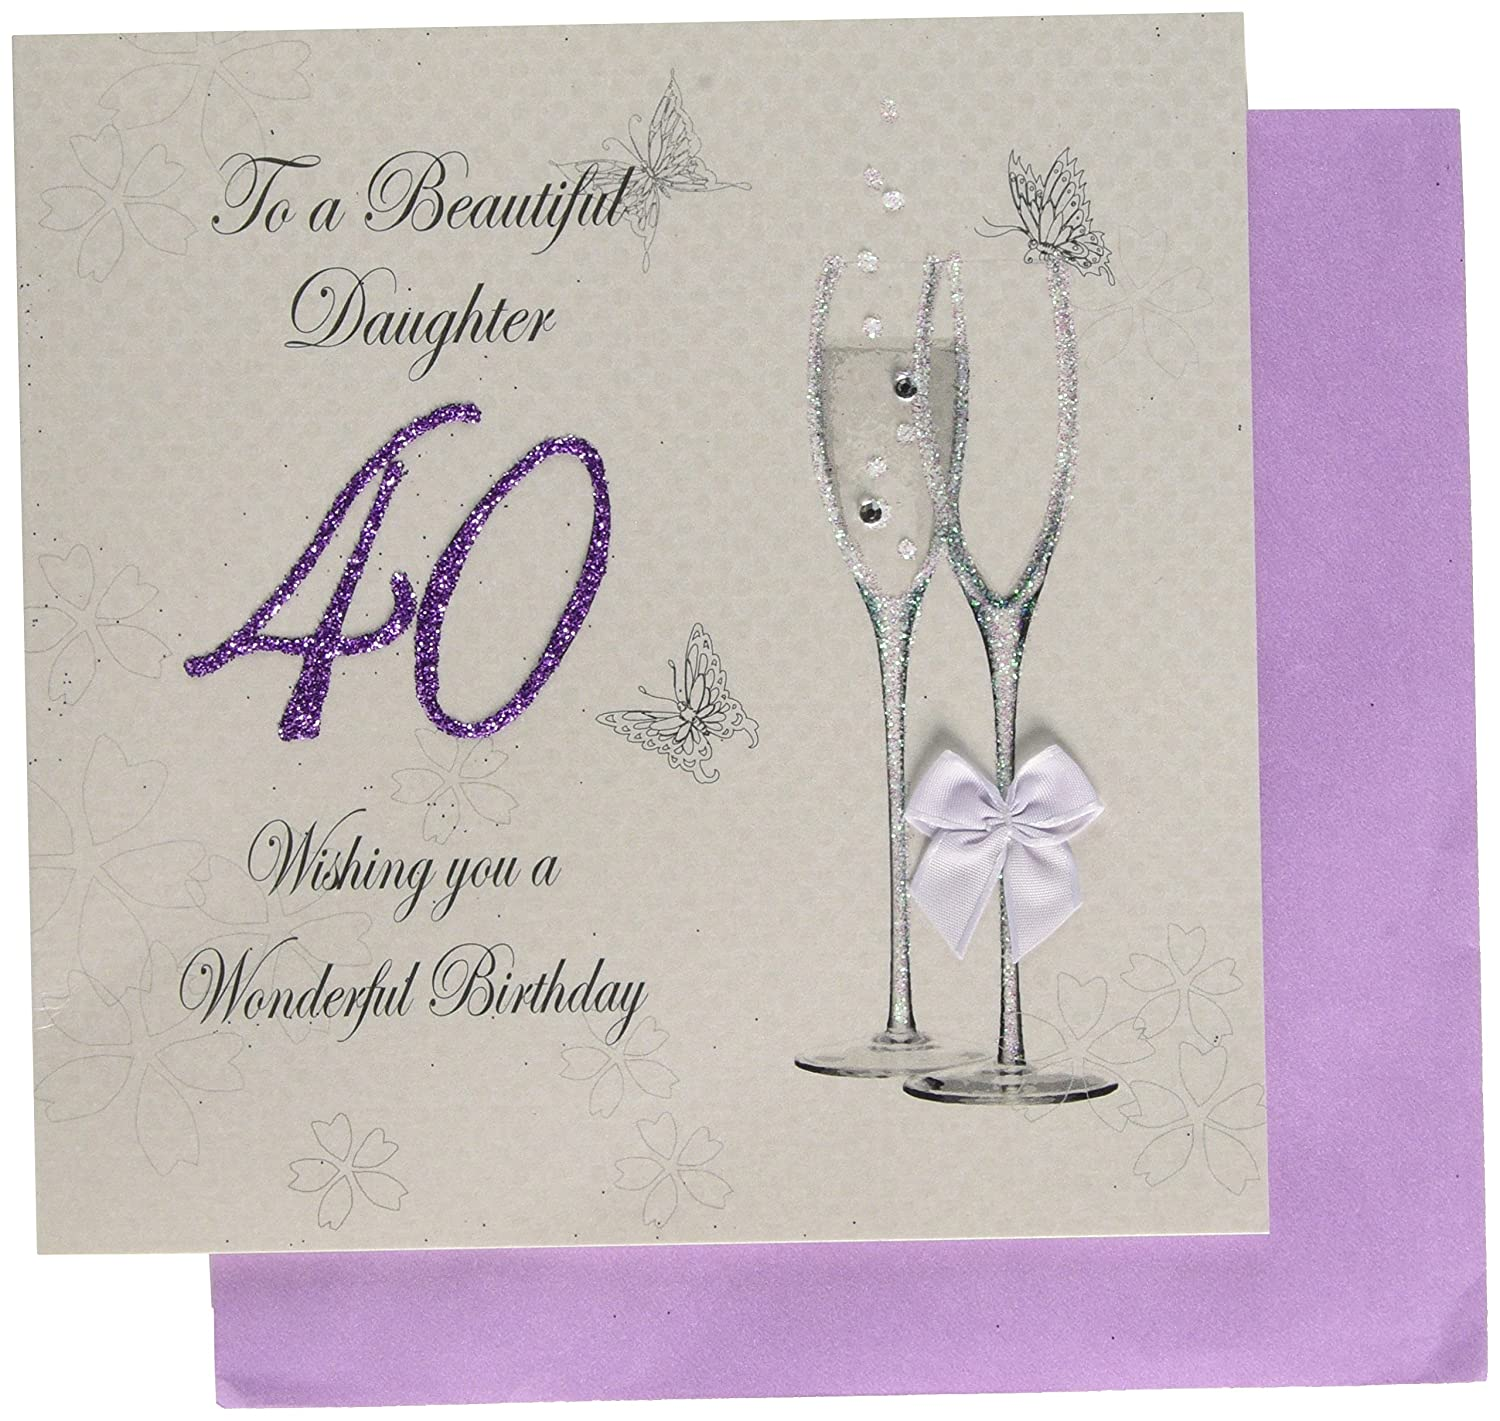 WHITE COTTON CARDS To A Beautiful Daughter 40 Wishing You Wonderful Handmade 40th Birthday Card Code BD10 Amazoncouk Kitchen Home